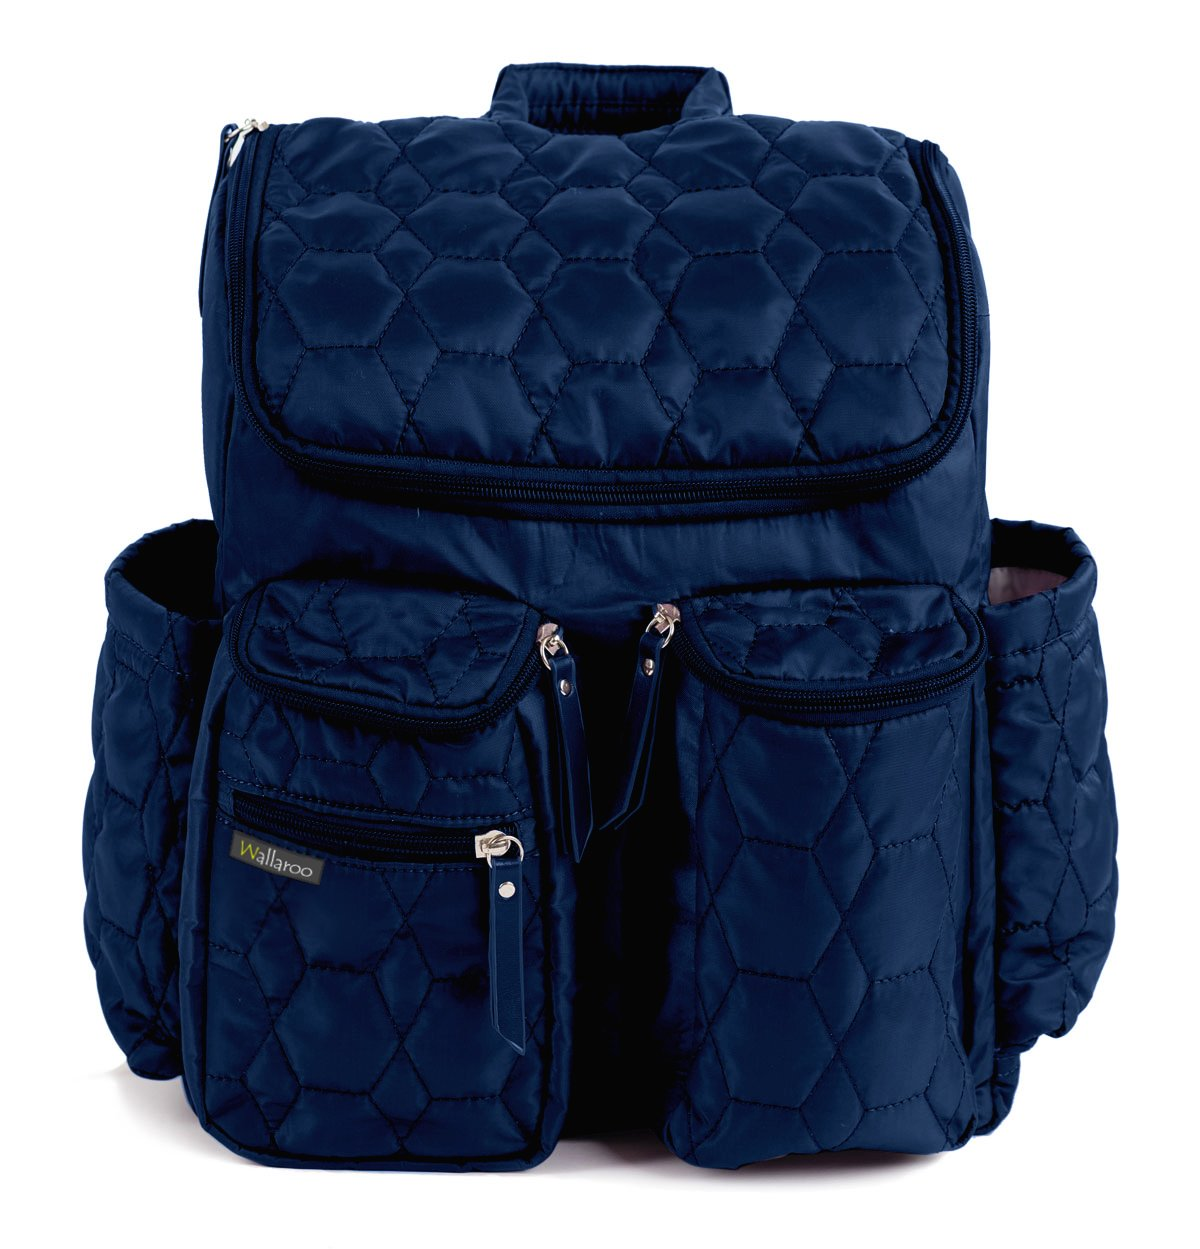 Top 9 Best Diaper Bags for Dads You'll Crave To Have (2020 Reviews) 9